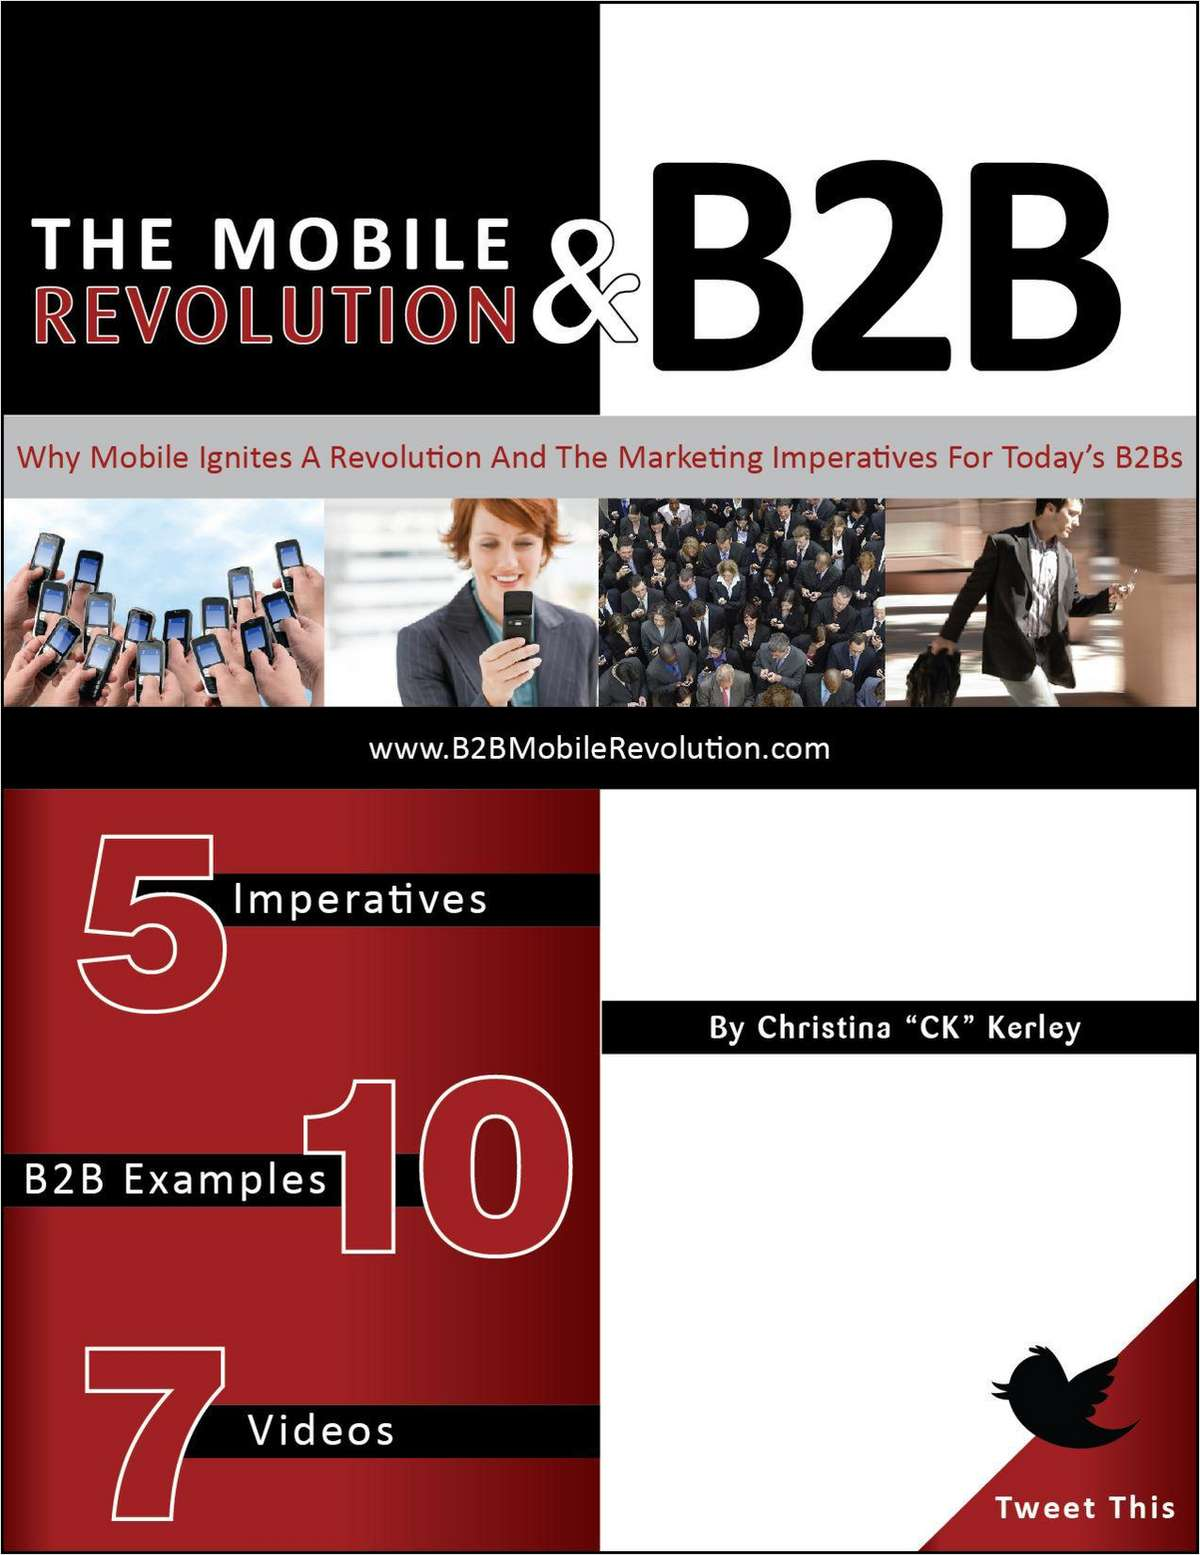 The Mobile Revolution & B2B